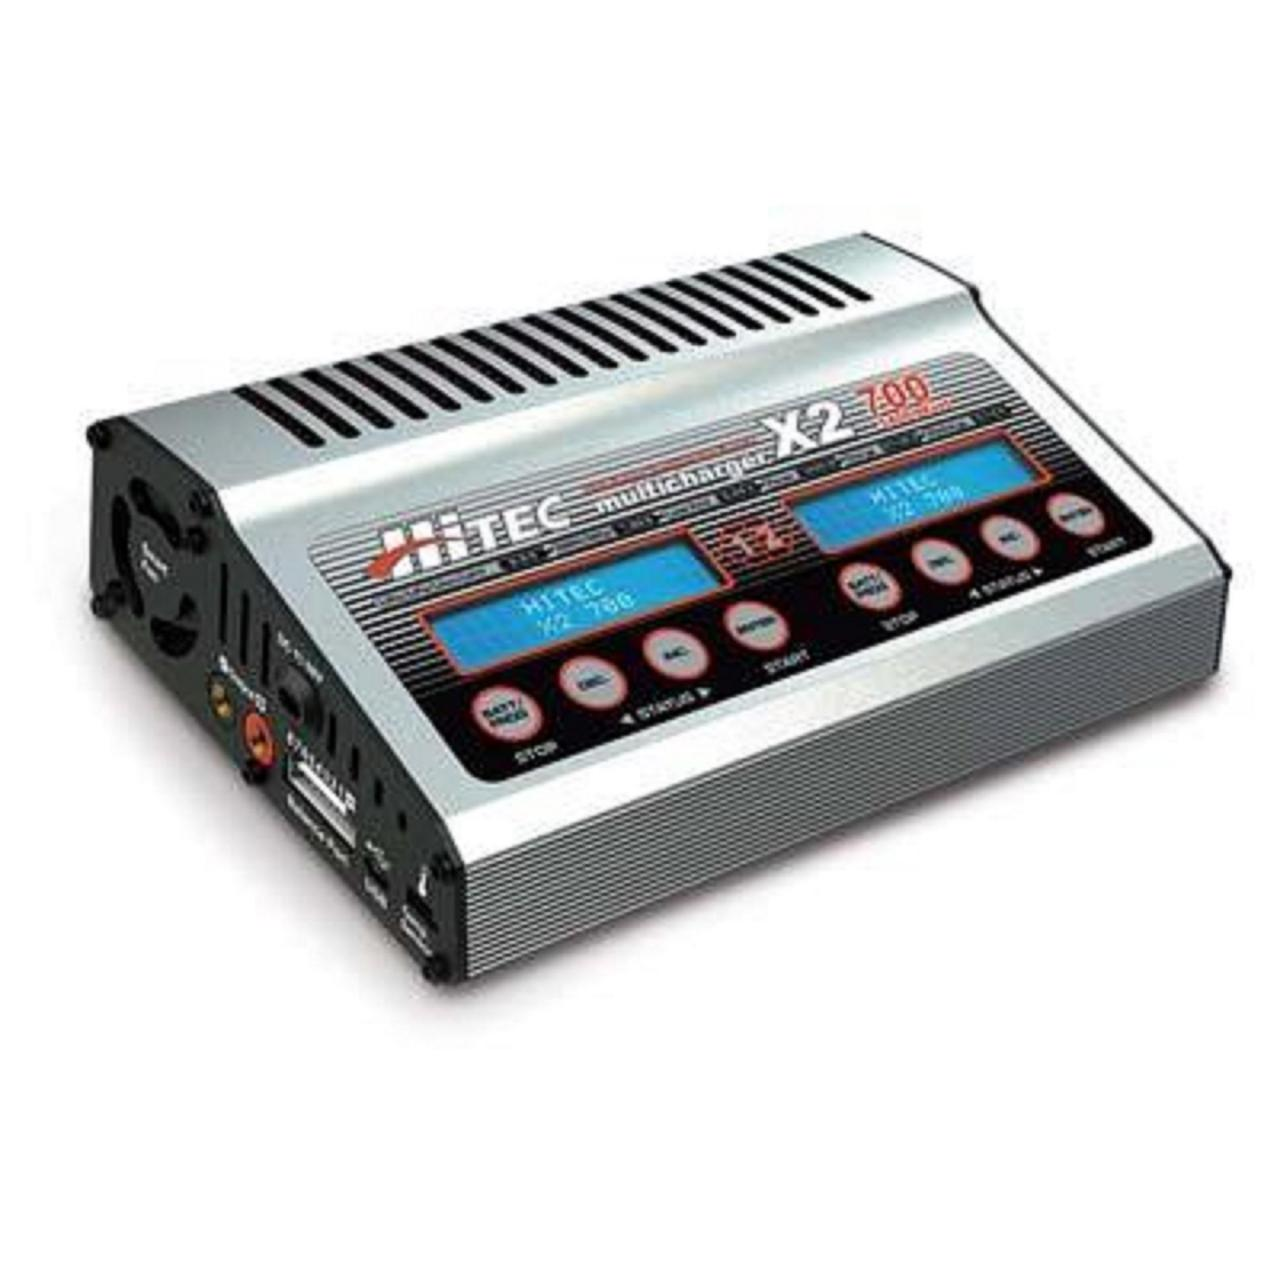 Buy cheap Hitec X2 700 DC Dual Port Charger with 700 Watts Per Channel HRC44239 from wholesalers